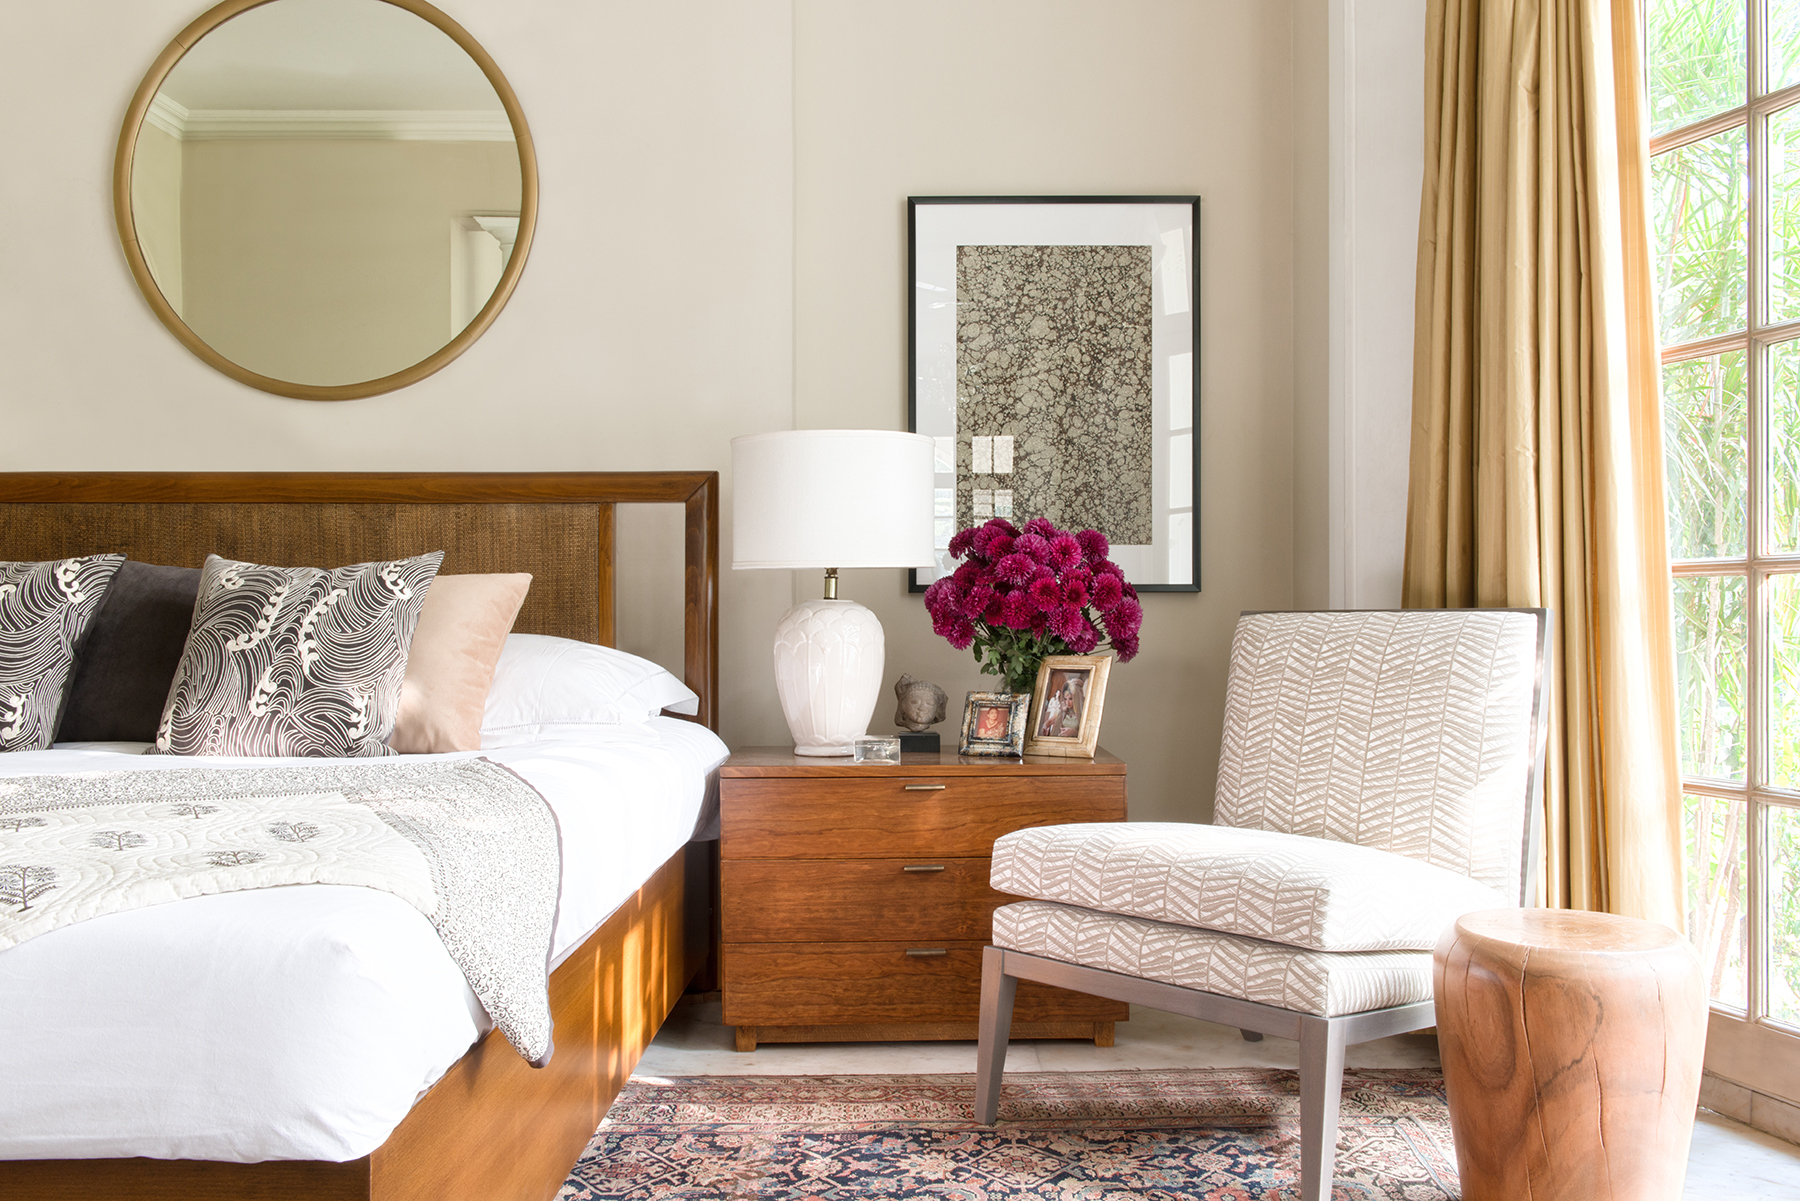 Summer plantation bedroom with Mimosa round wooden stool and Madeleine slipper chair in chic grey bamboo print fabric